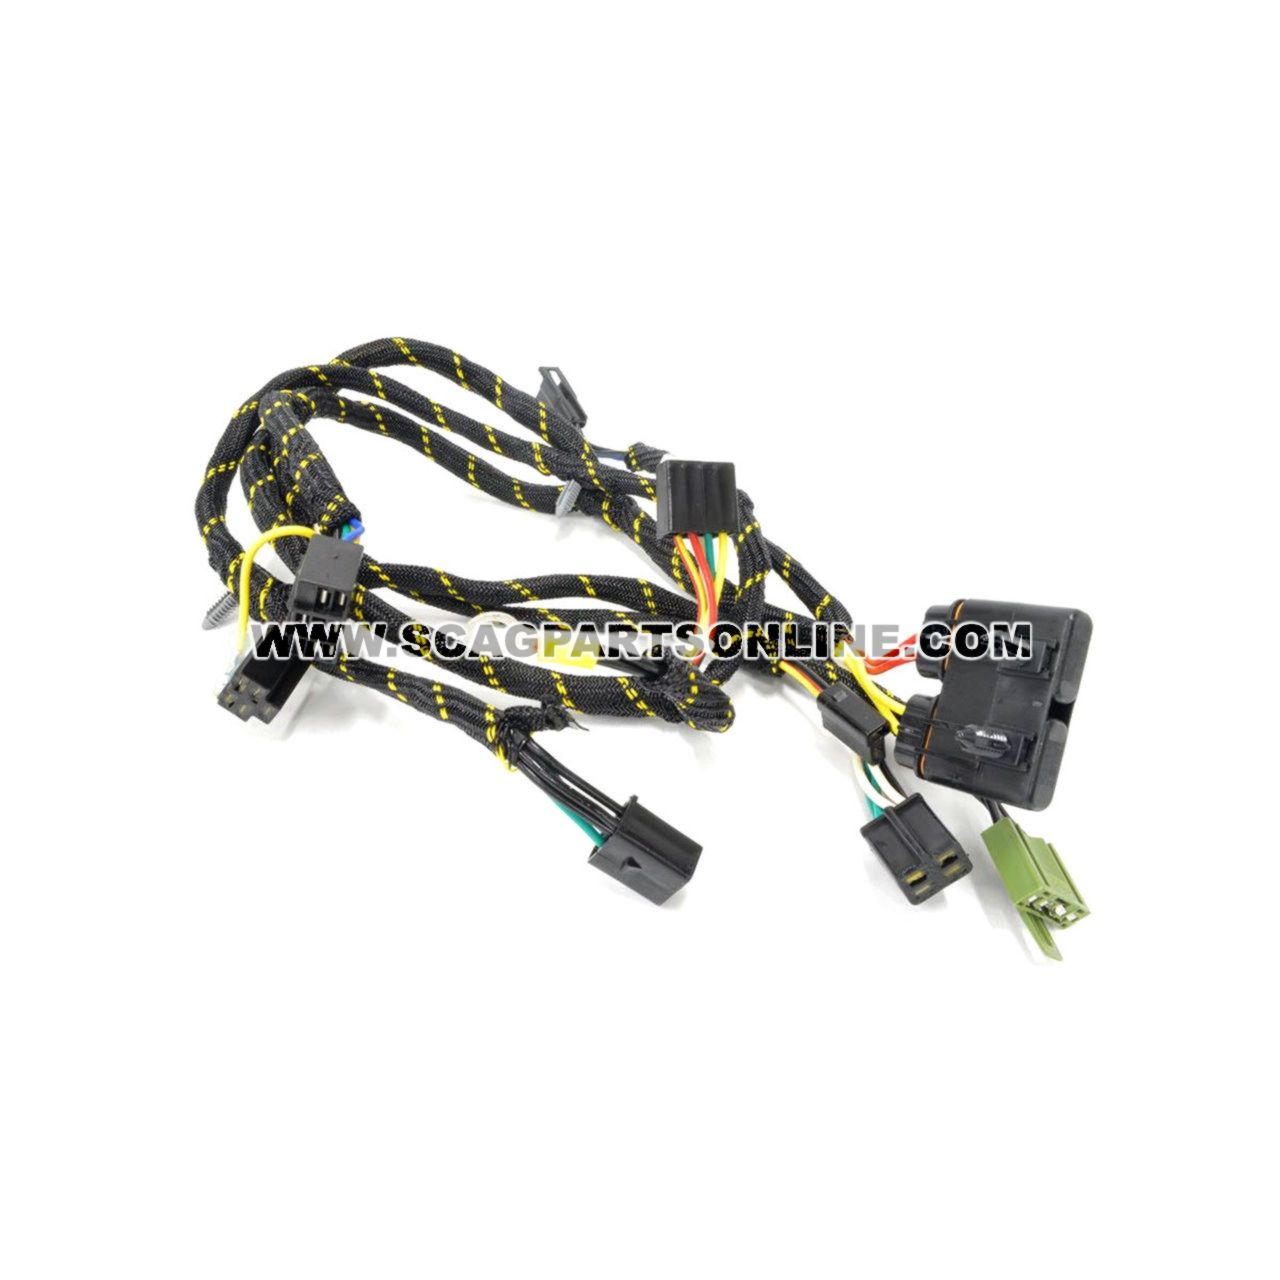 1 OEM Scag wire harness 484648